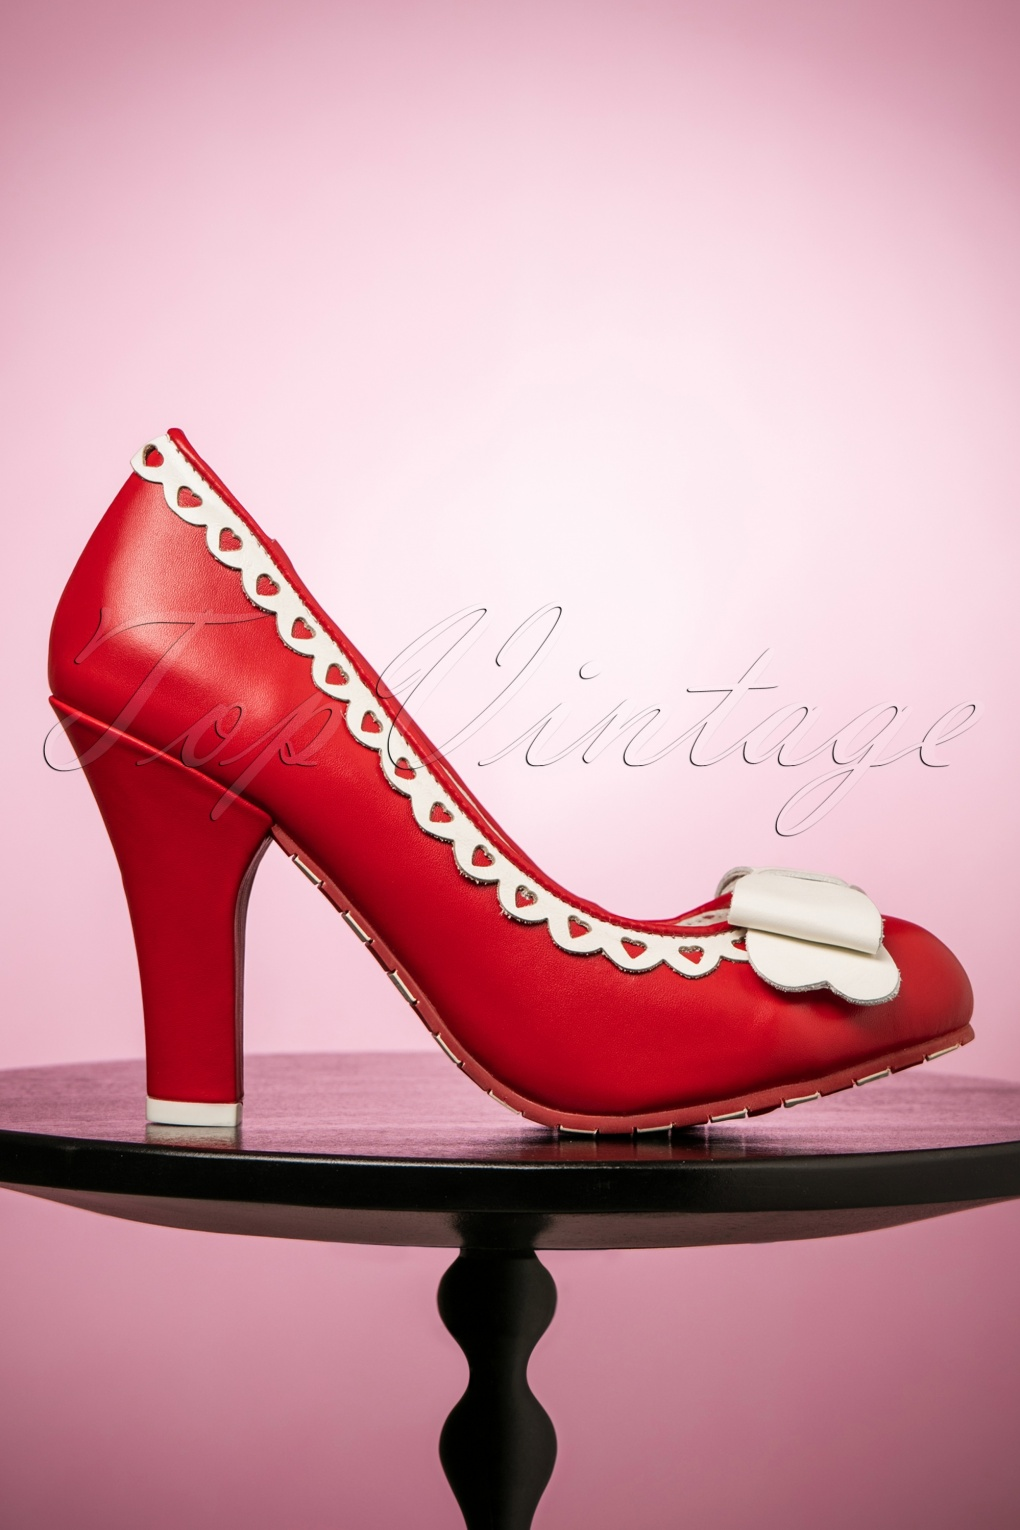 Pin Up Shoes- Heels & Flats 50s June Cheers Darling Leather Pumps in Red £142.52 AT vintagedancer.com